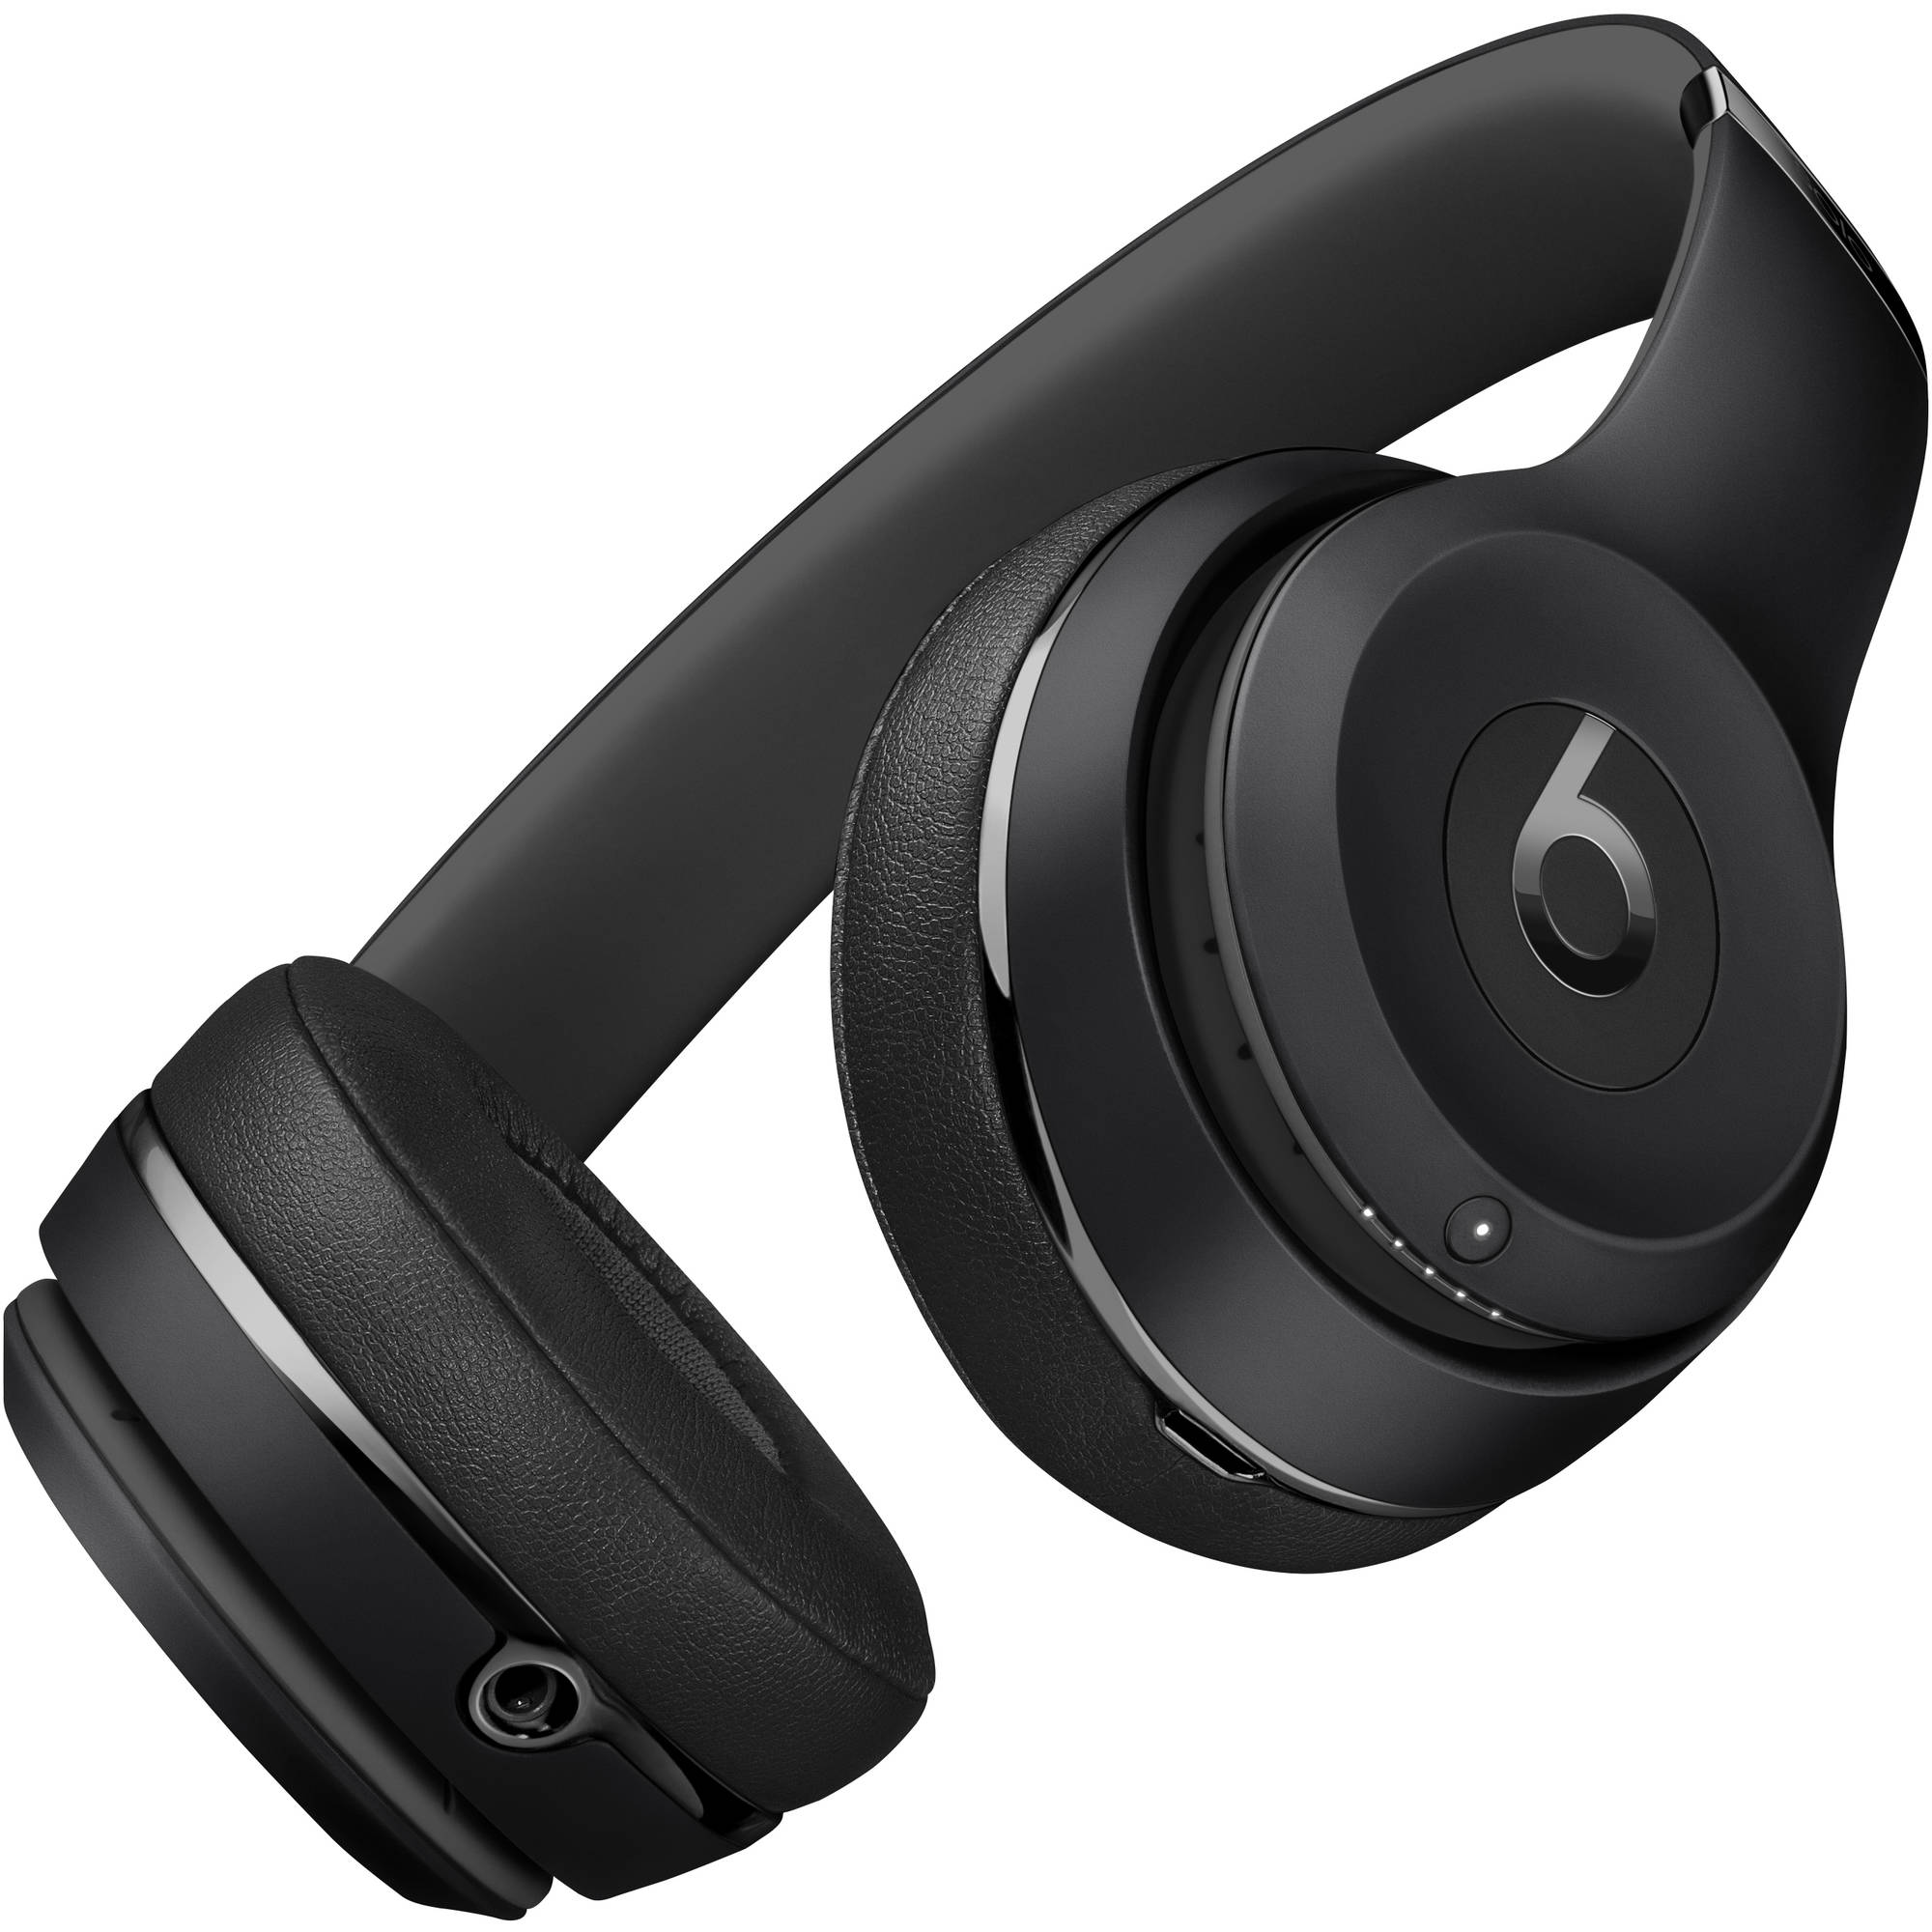 Refurbished Beats Solo3 Wireless On-Ear Headphones